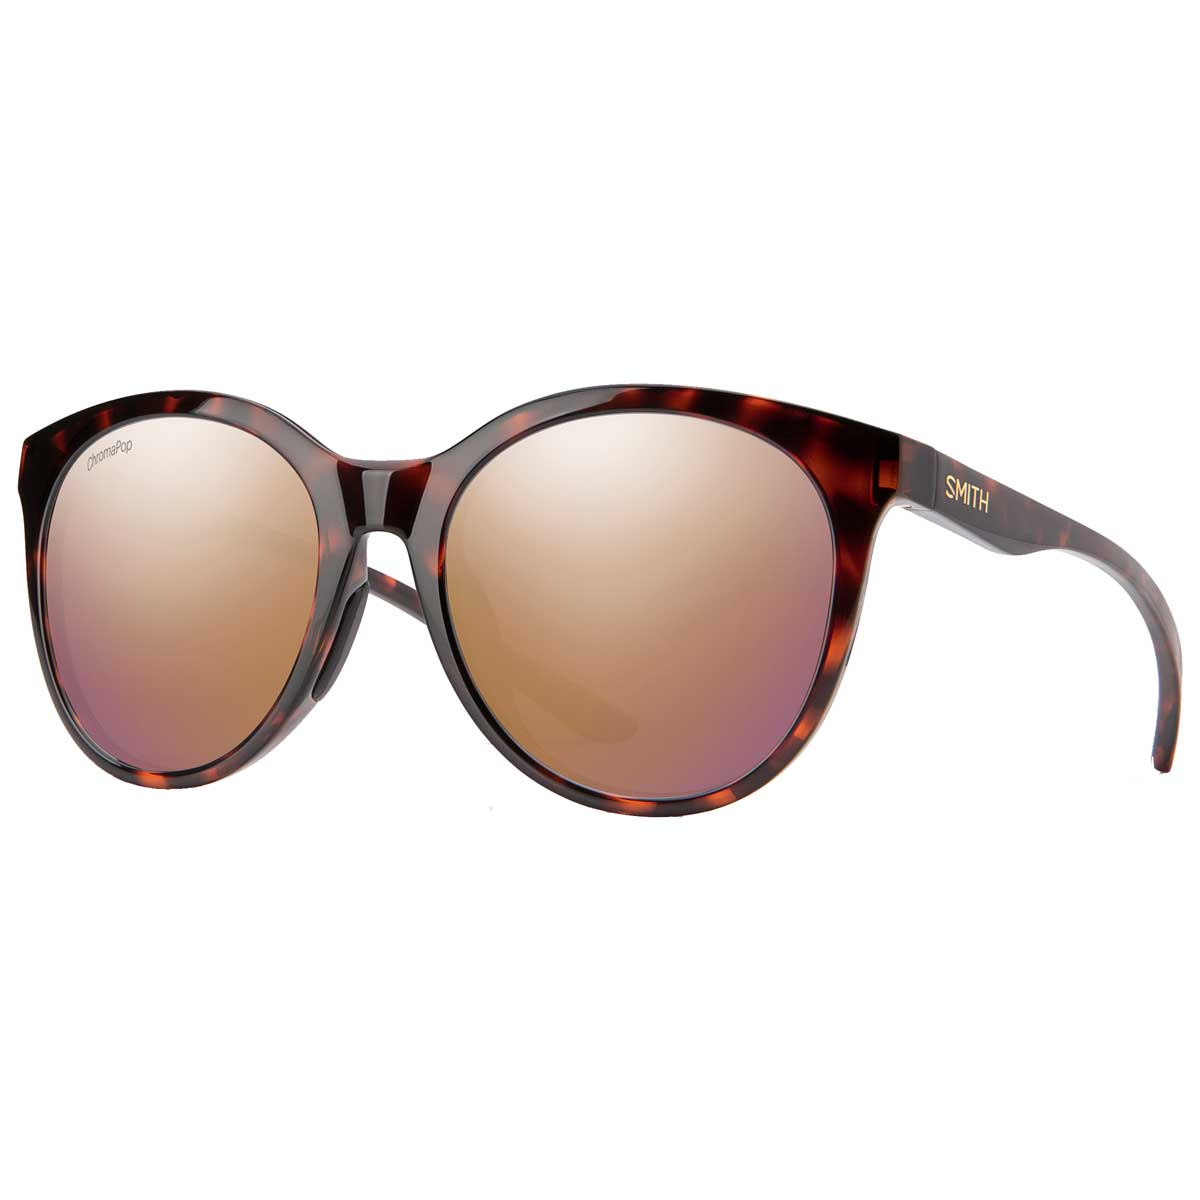 Smith Bayside sunglasses in Tortoise with Rose Gold Mirror Chromapop Polarized lenses